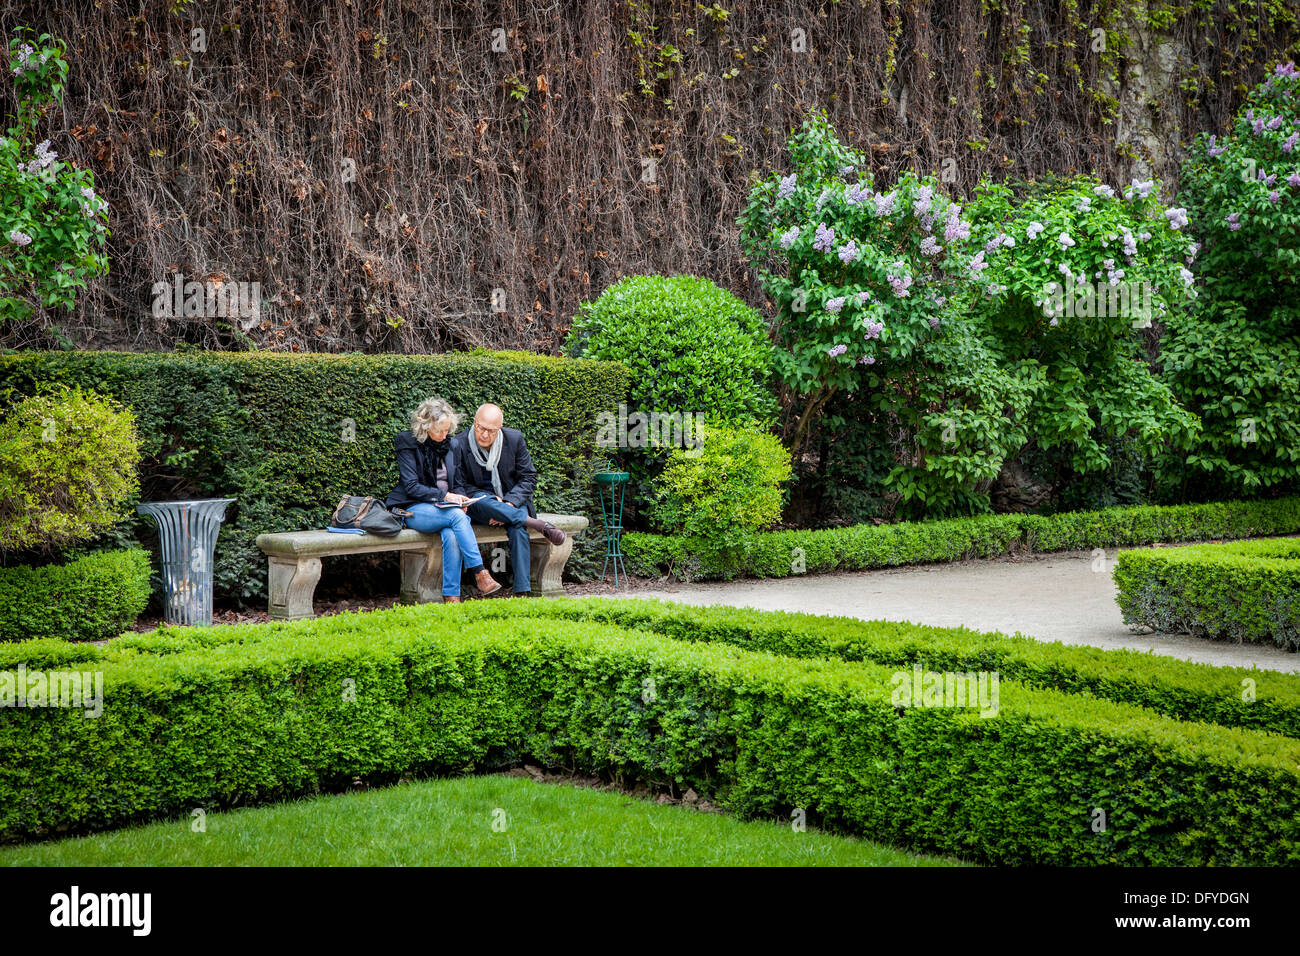 Paris Park Bench Couple Sitting On Park Bench Inside